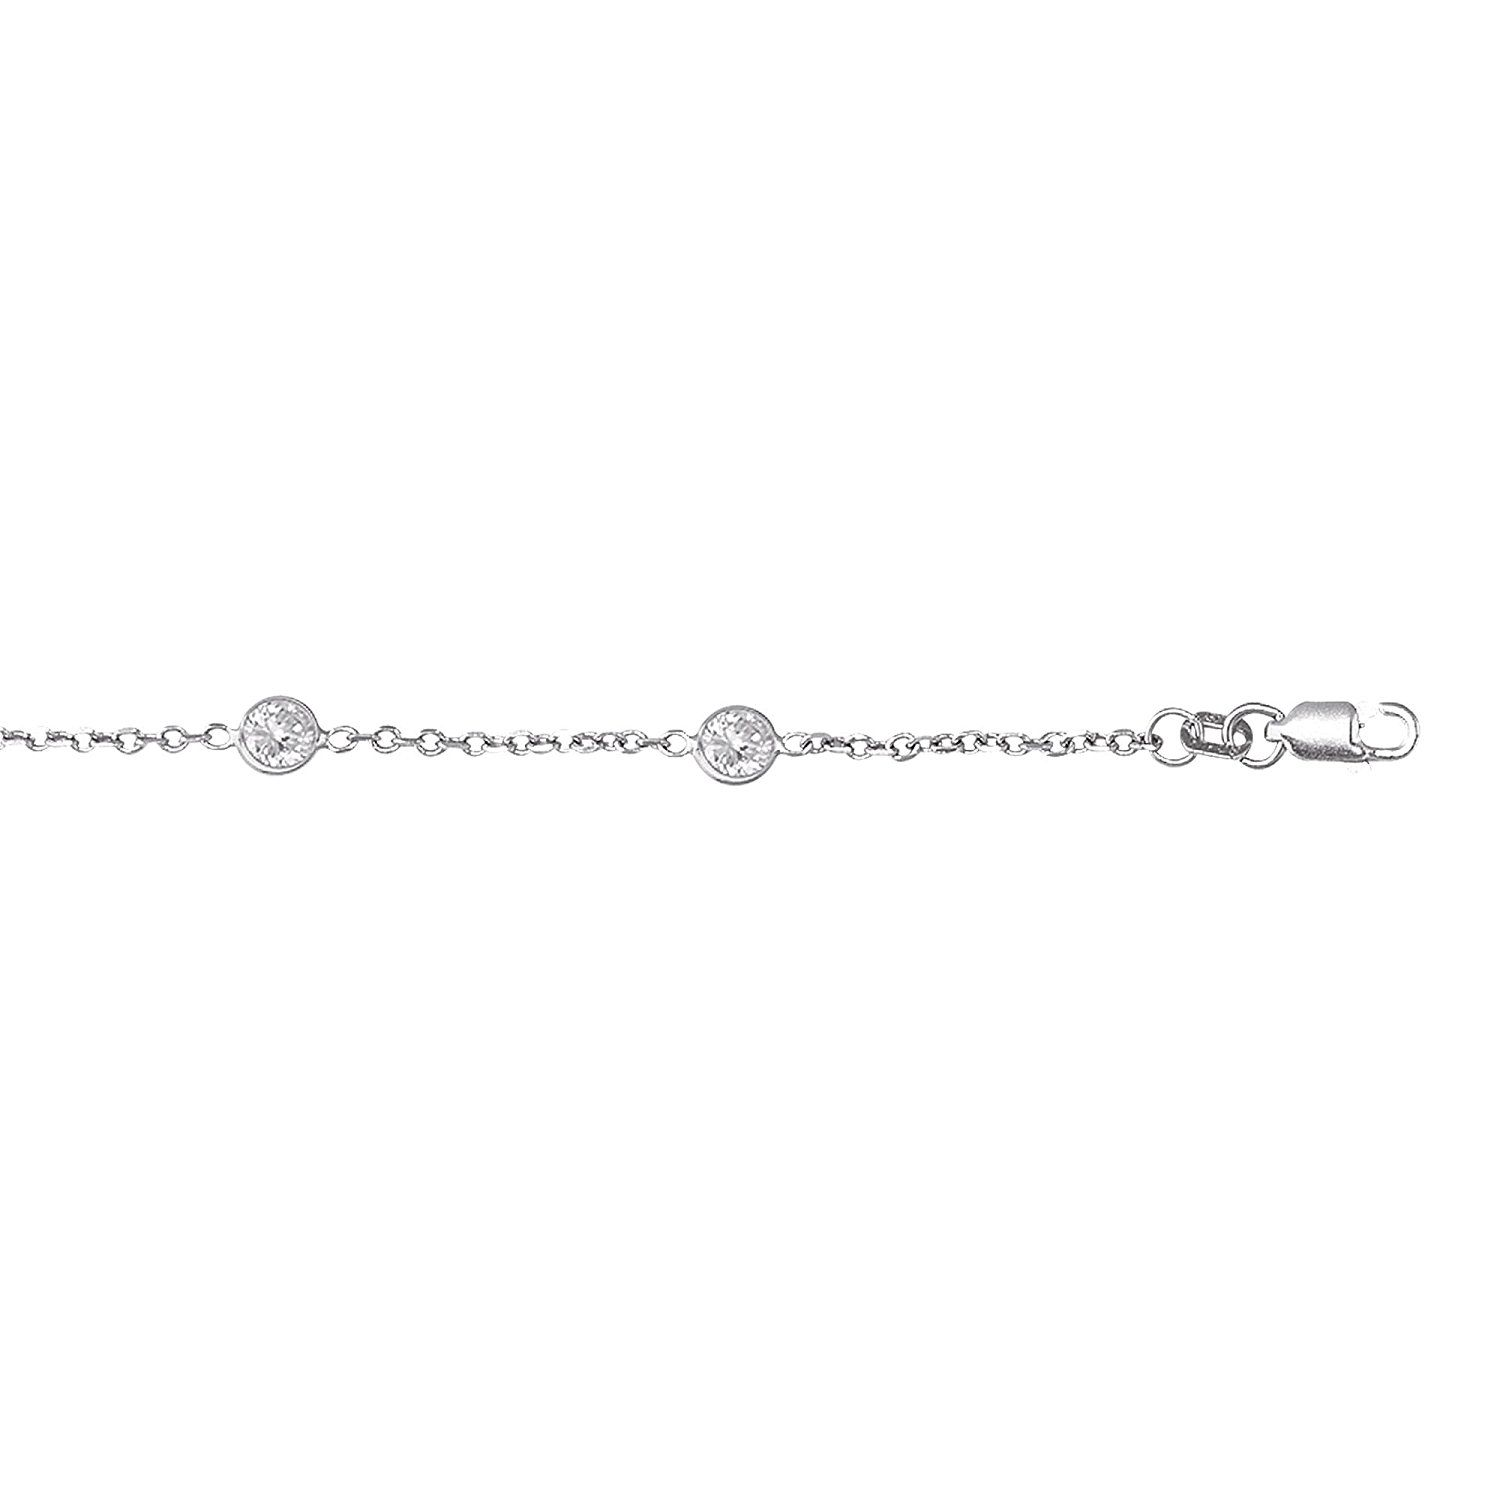 info gold and over is receive the rose i anklet on sterling amazon affiliate image silver want additional pin click link cubic zirconia a an this